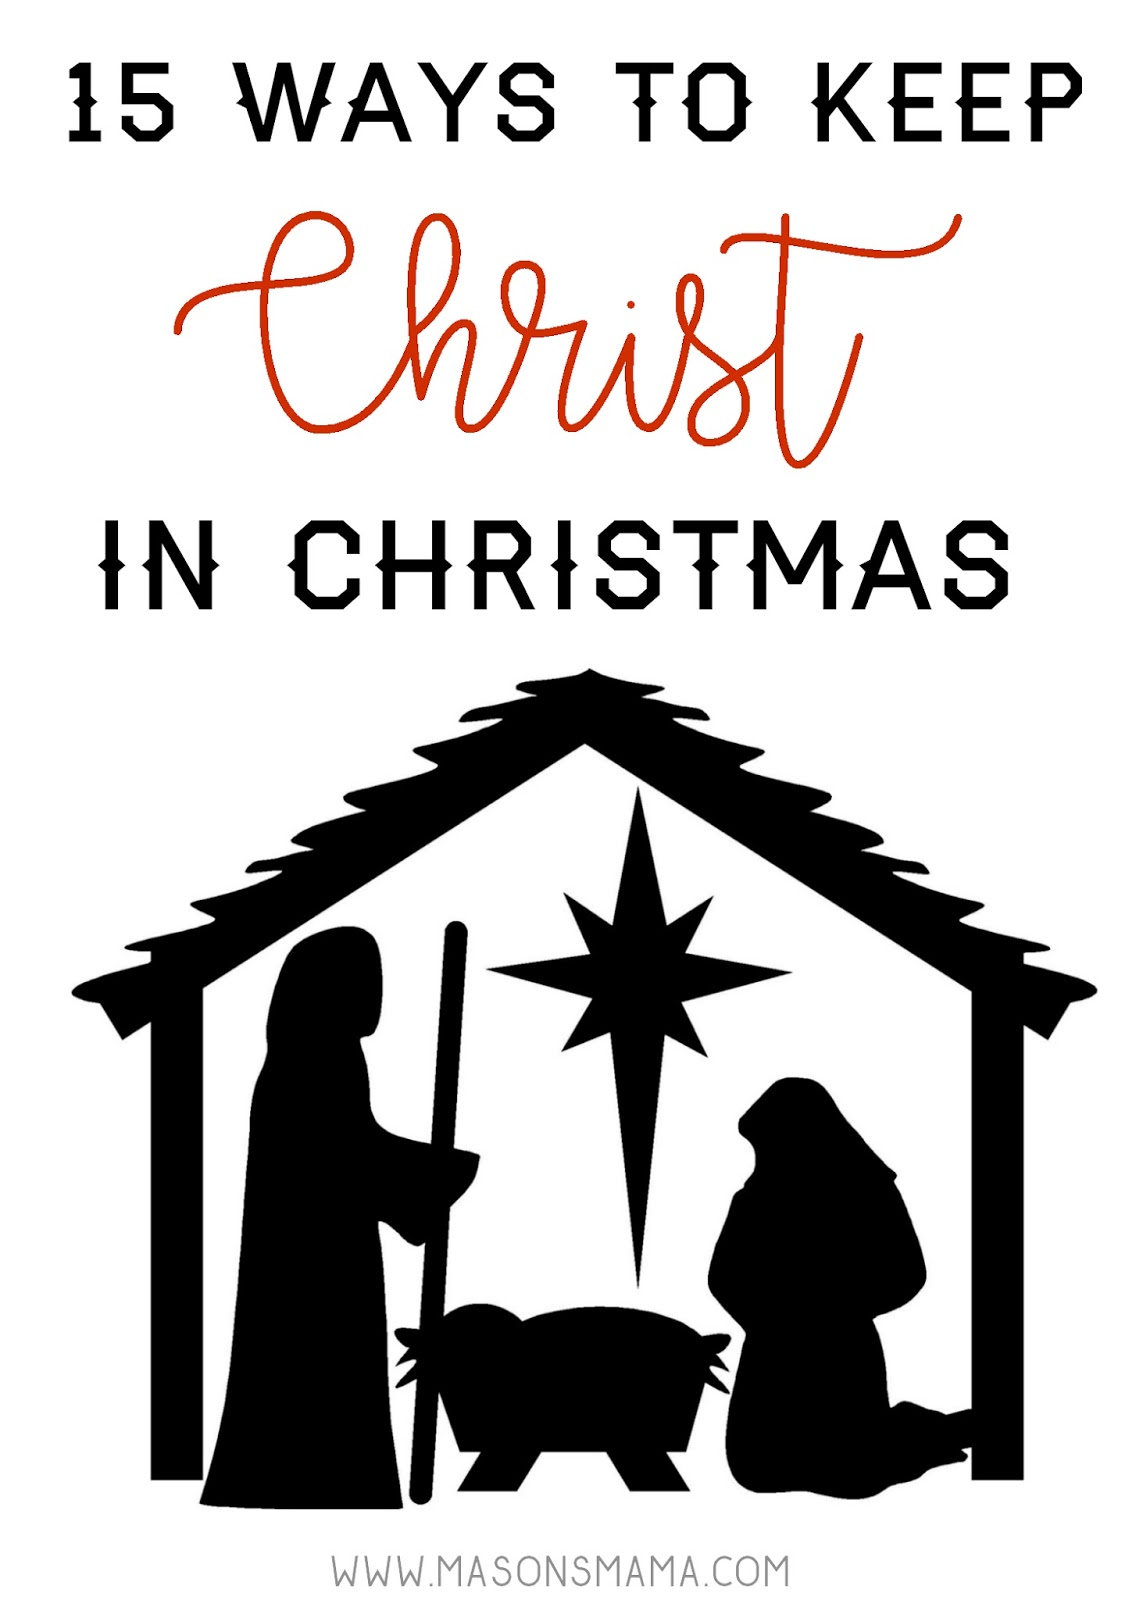 Hall Around Texas 15 ways to keep Christ in Christmas